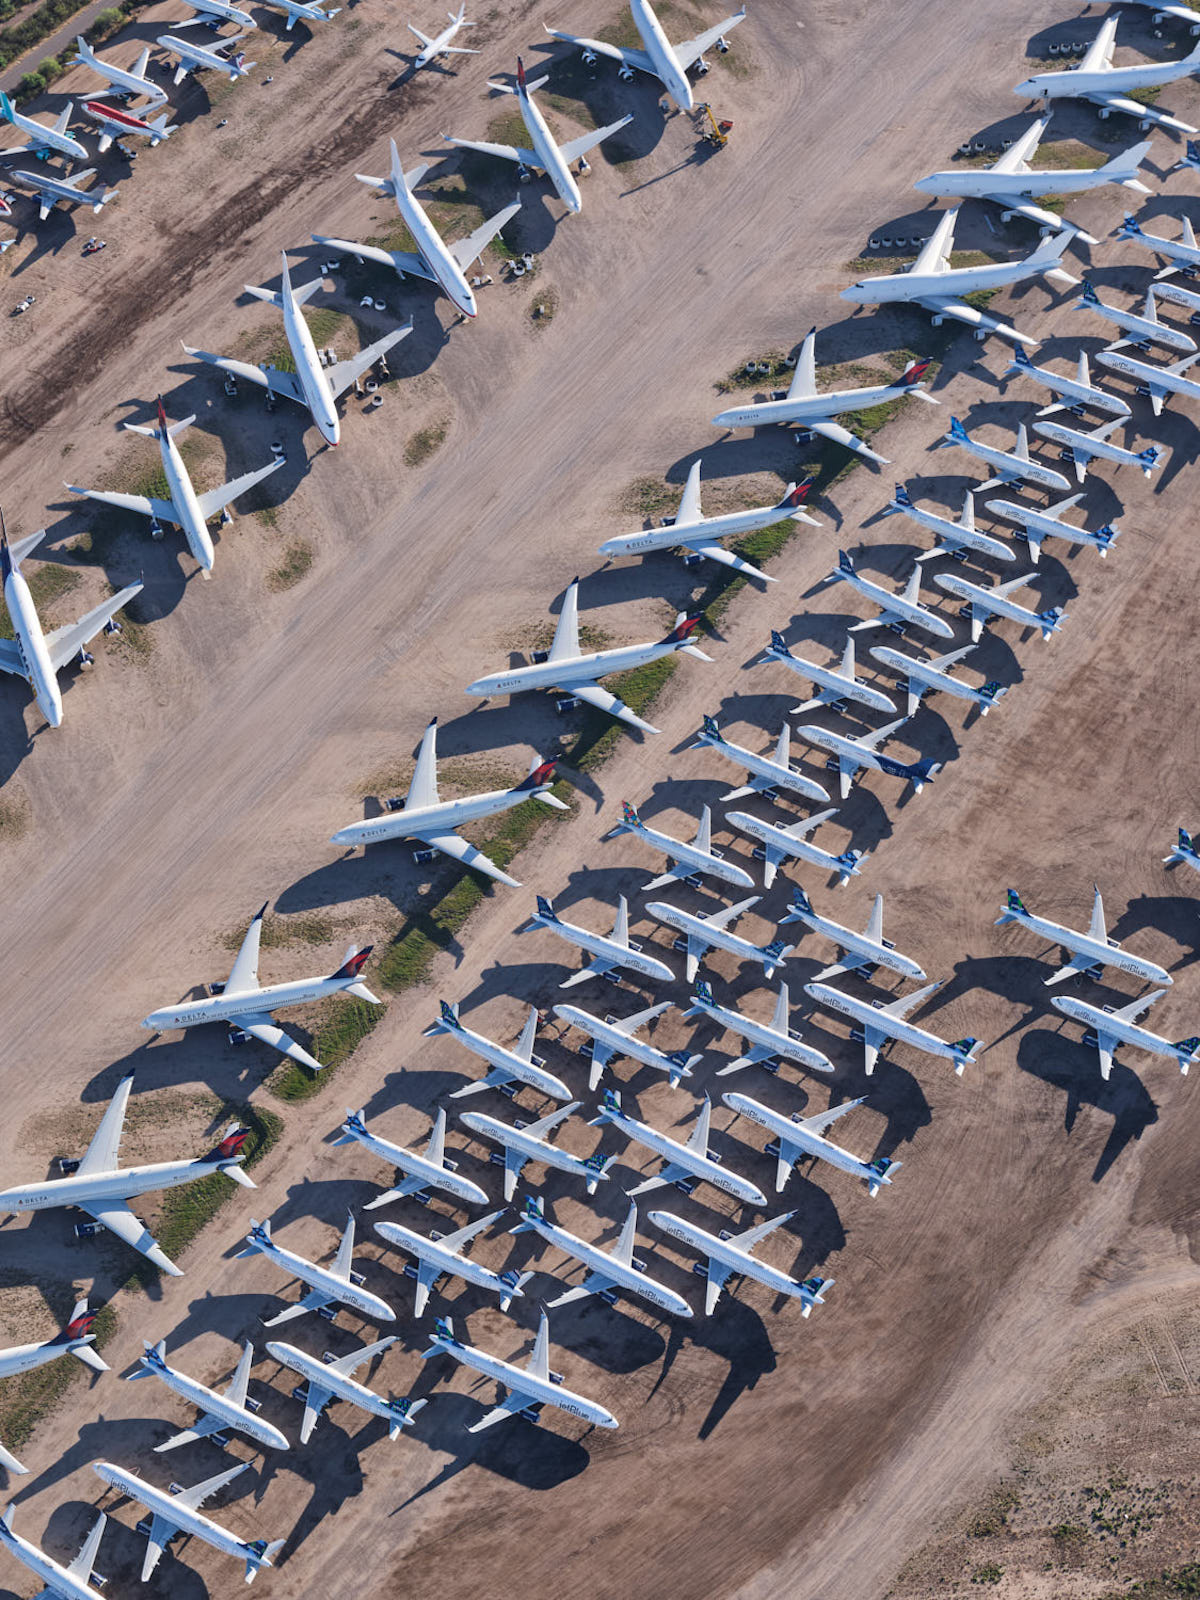 Airplanes at the Pinal Airpark